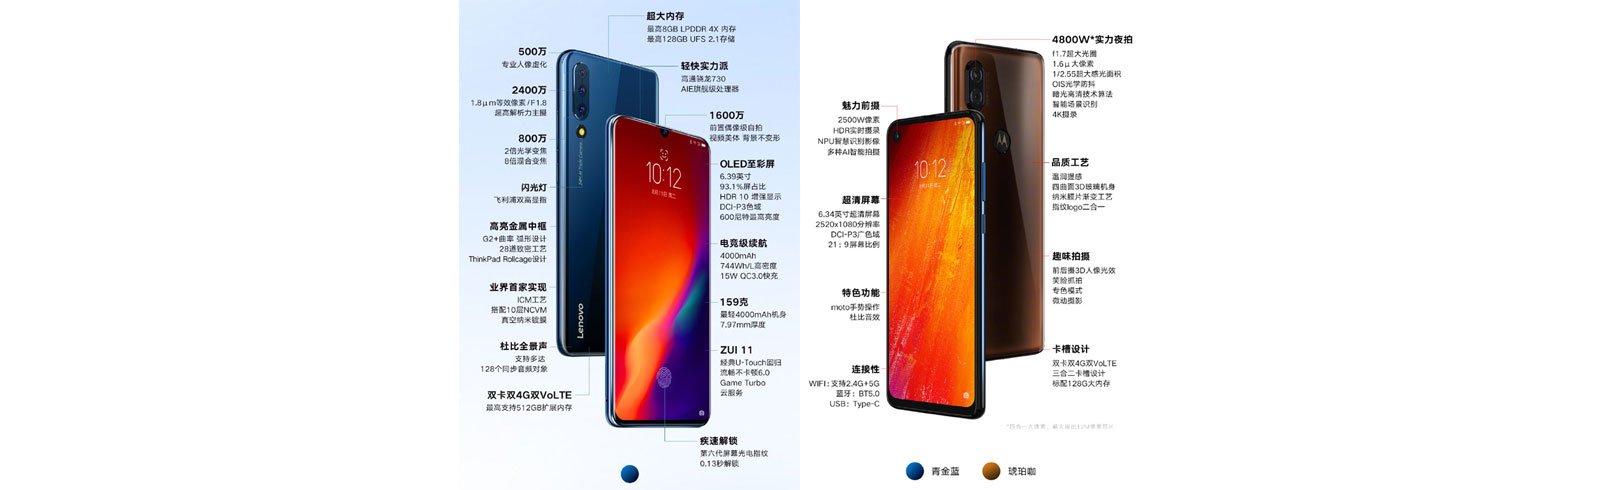 Lenovo Z6 and Motorola P50 specs unveiled prior to official announcement